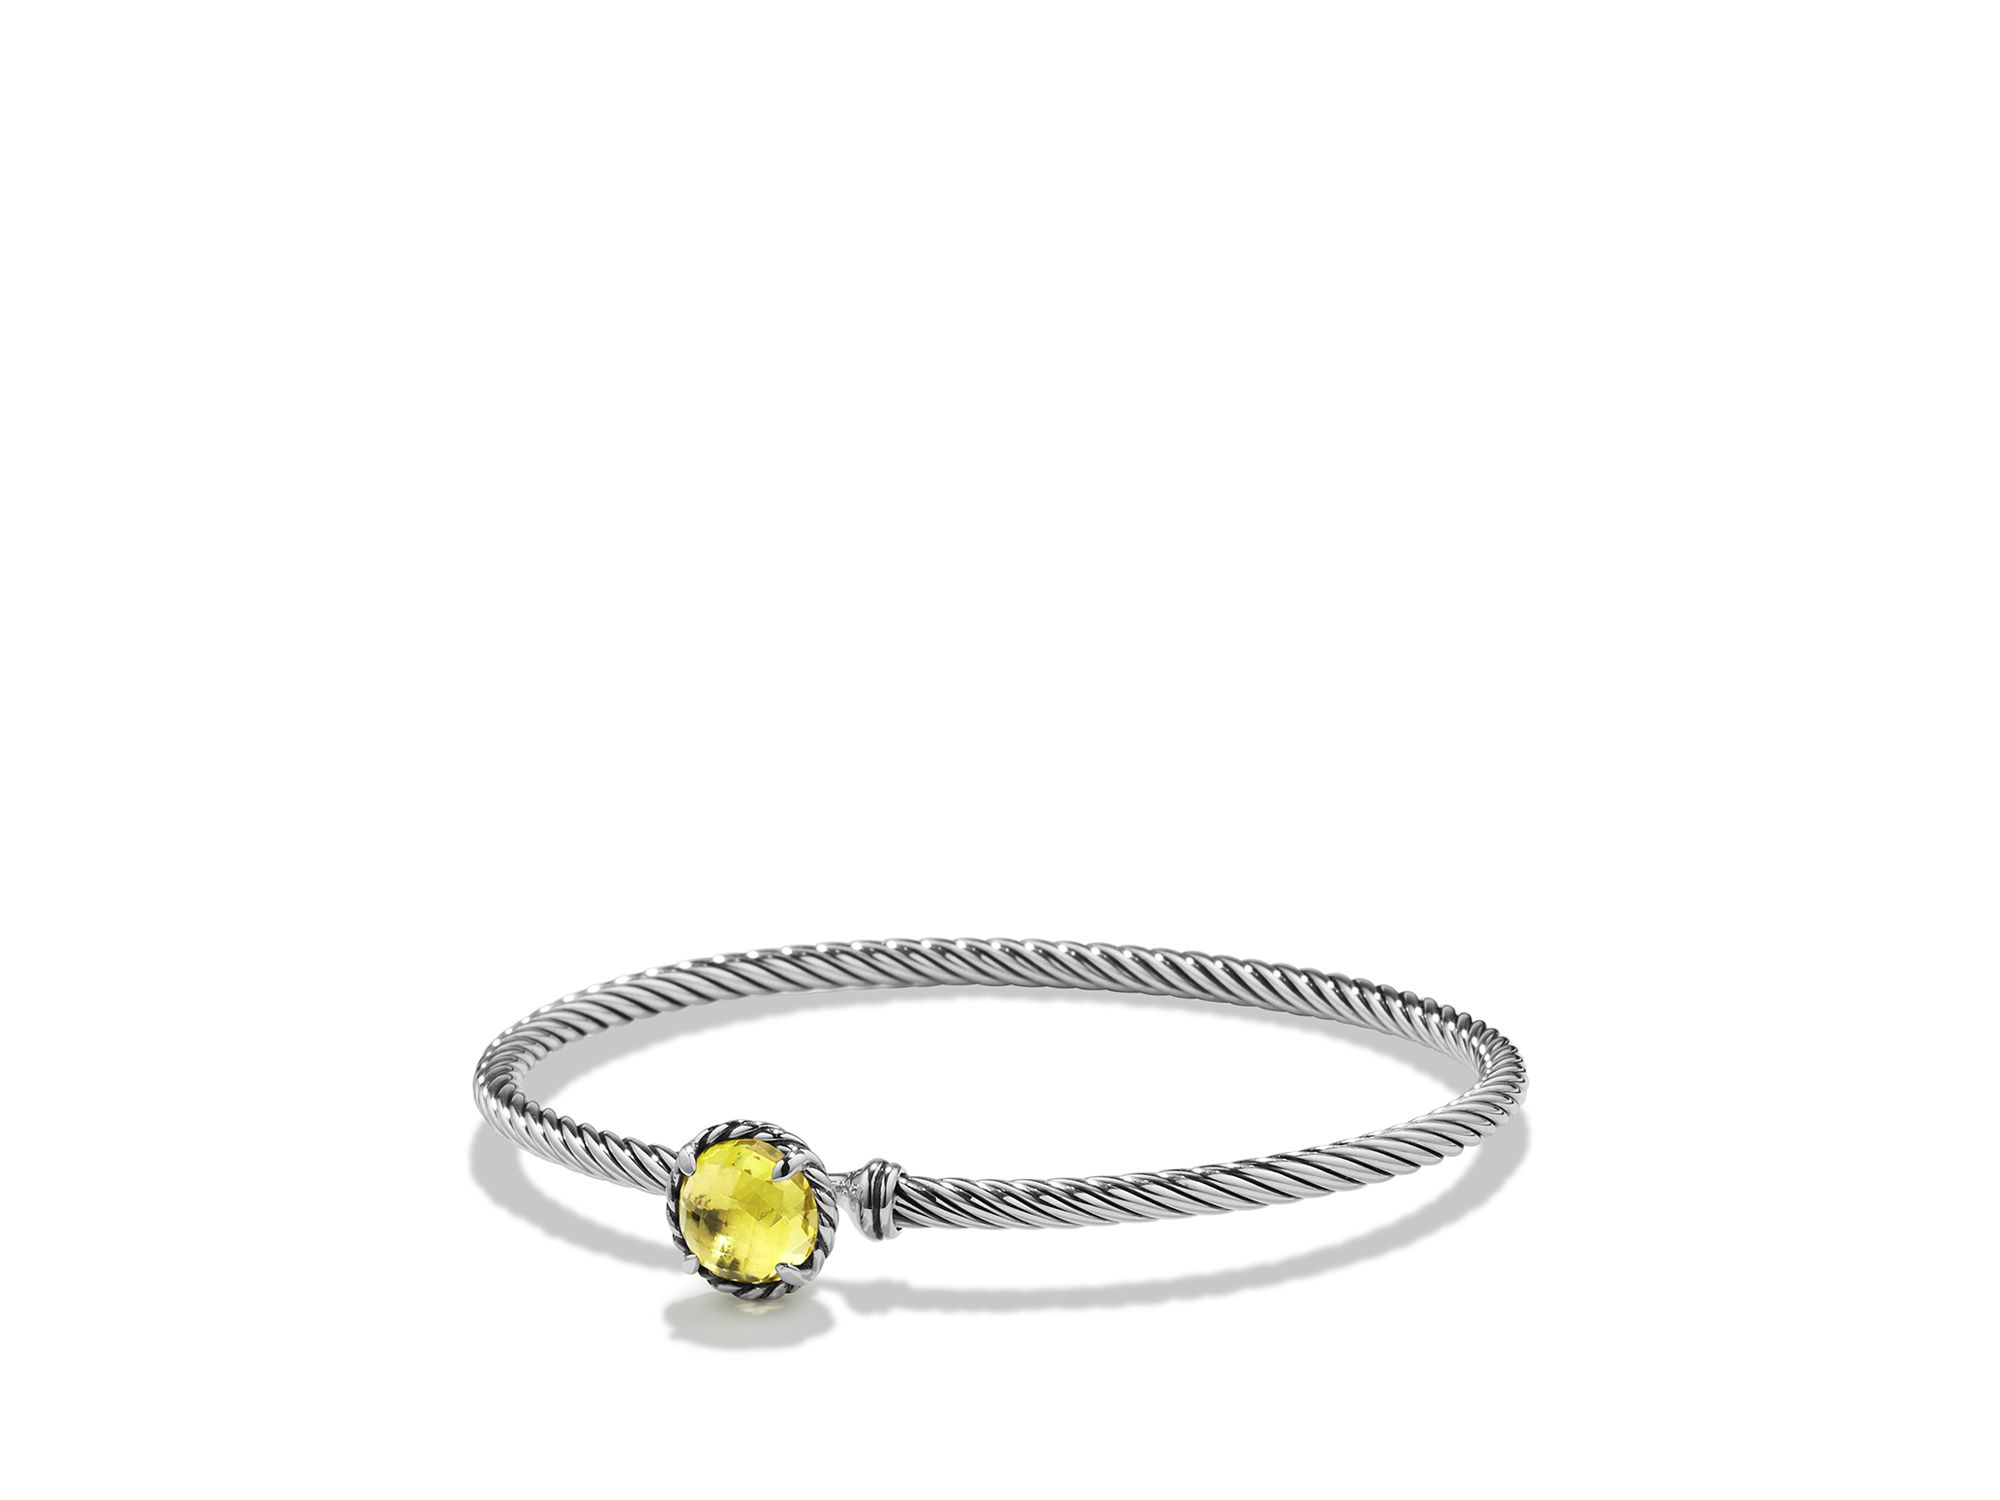 David Yurman Chatelaine Bracelet With Lemon Citrine In